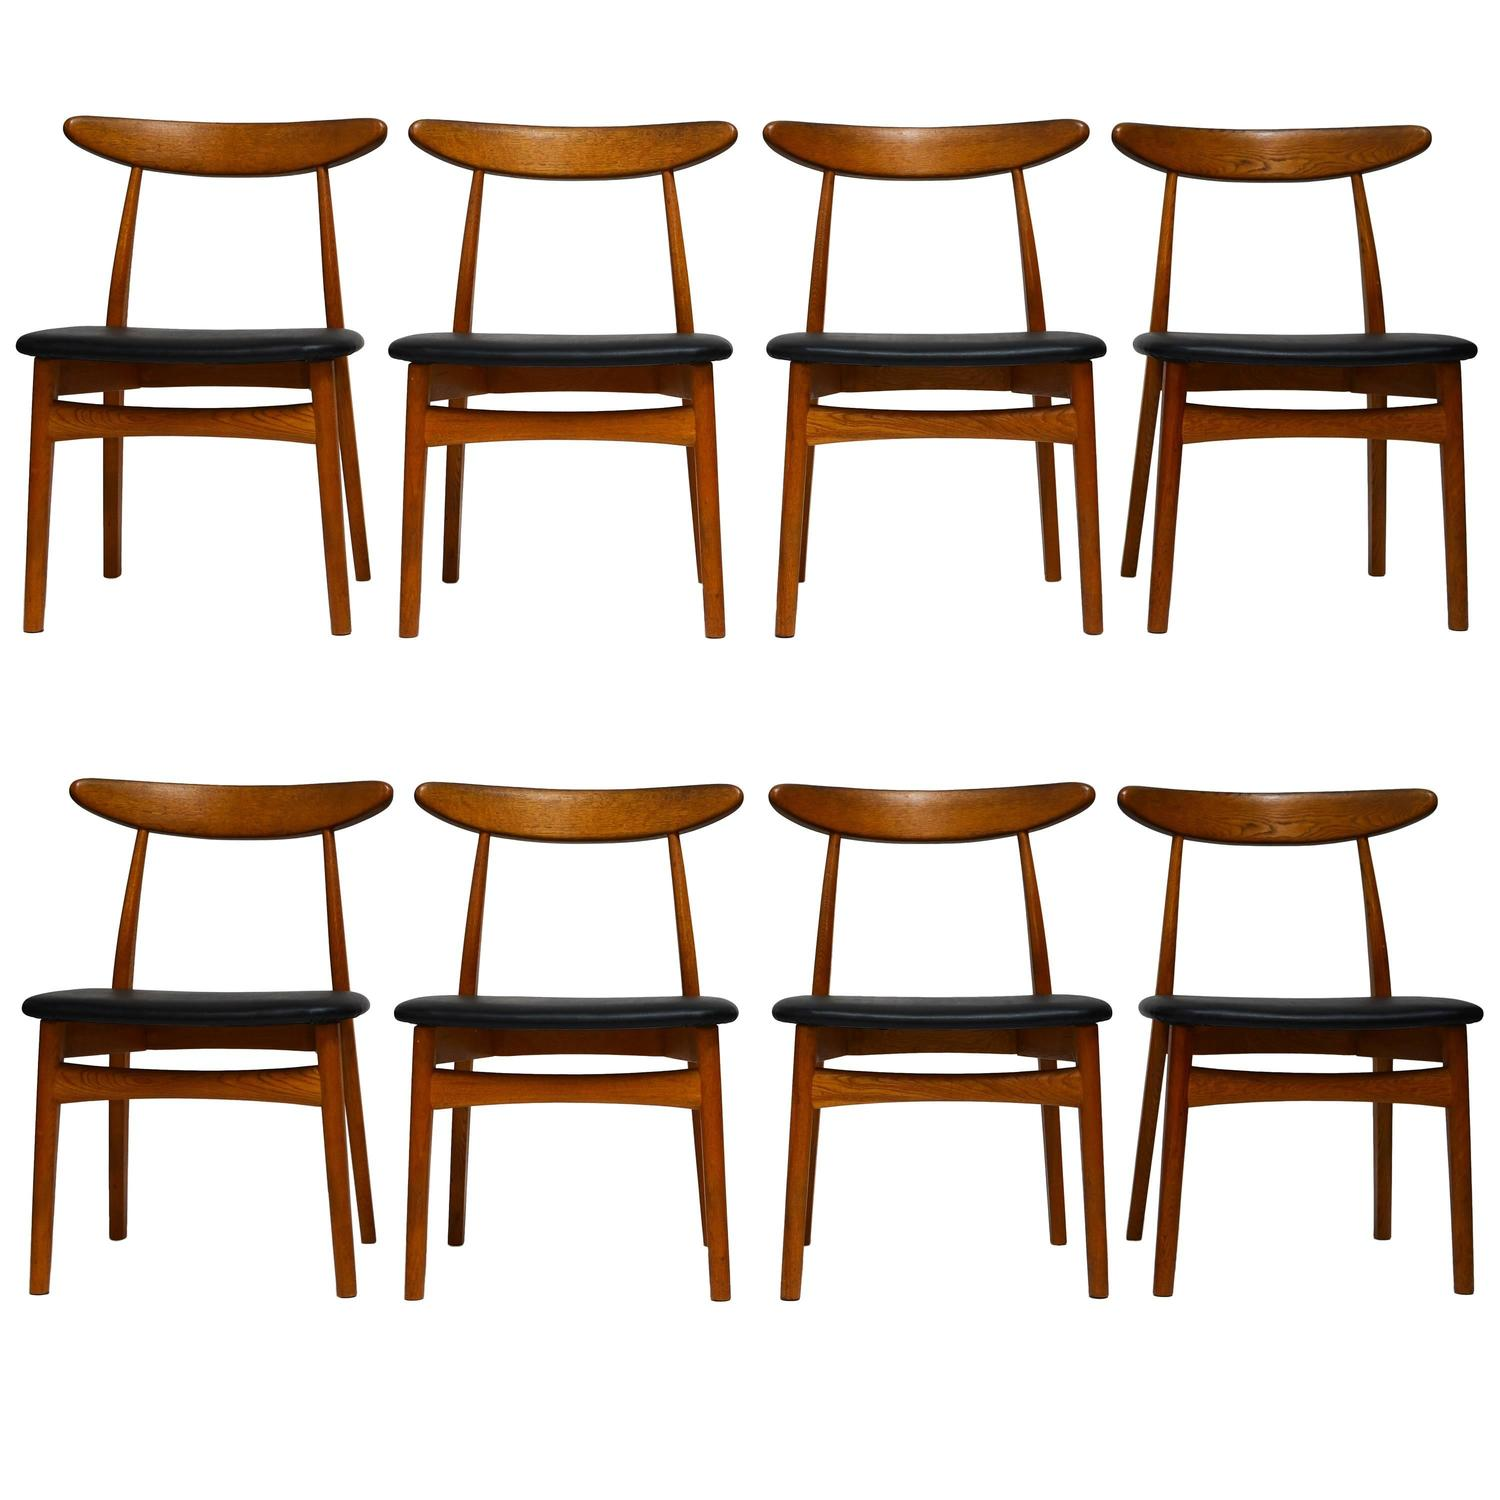 Modern dining chair 100 solid wood kitchen furniture how for Modern dining chairs under 100